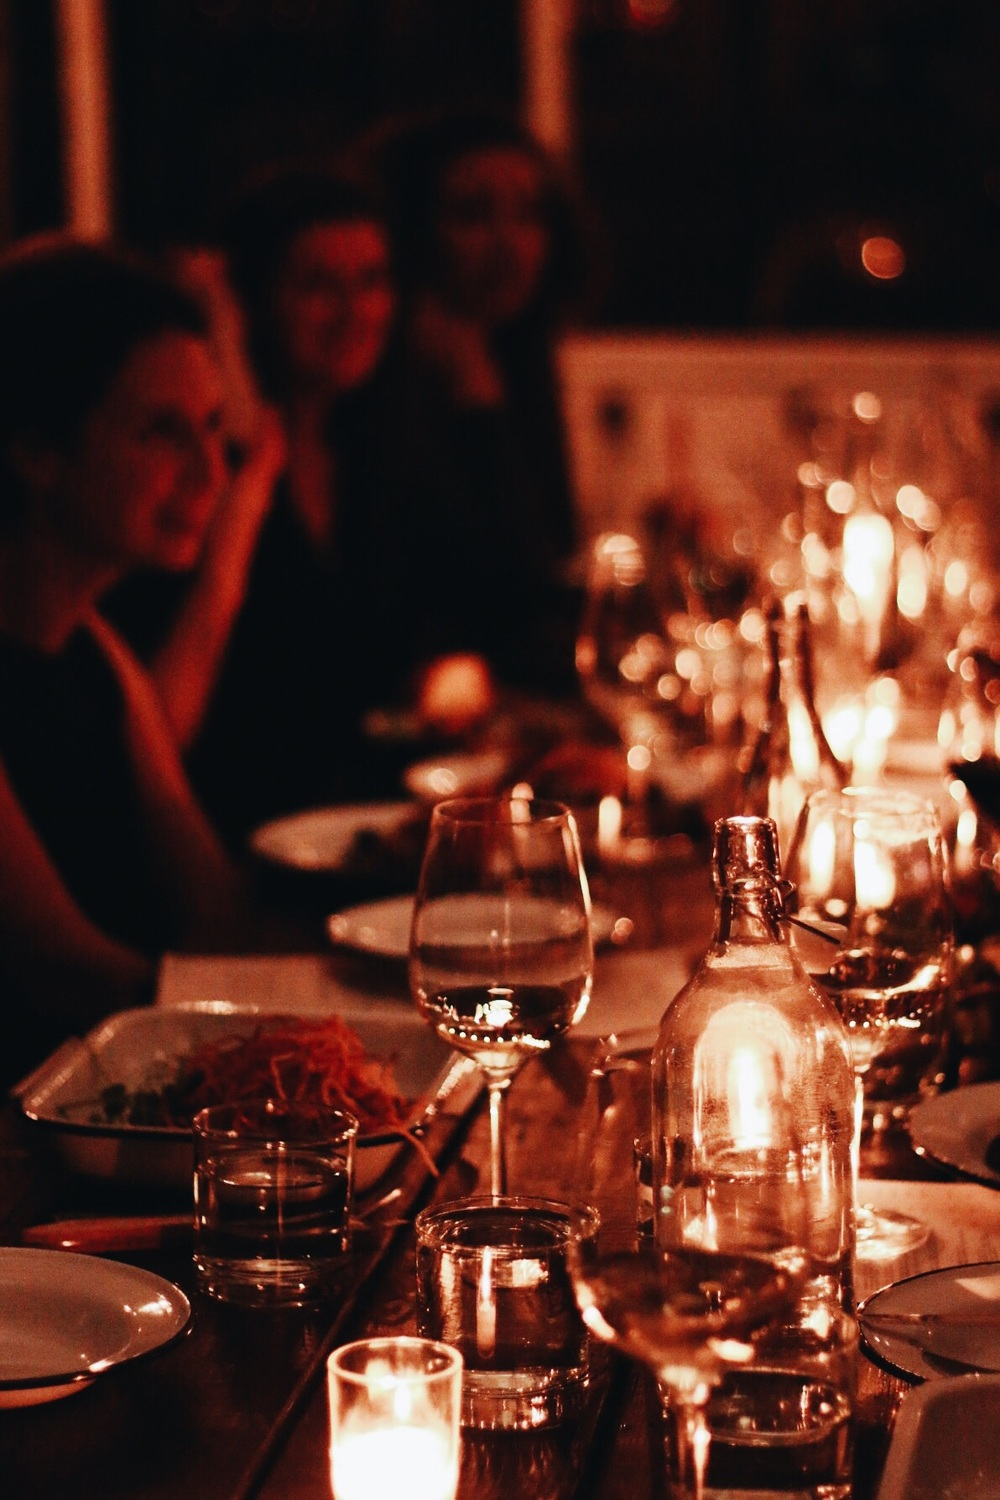 Gather up a group of girlfriends and head to Cooper's Hall for wine, wine, and more wine.